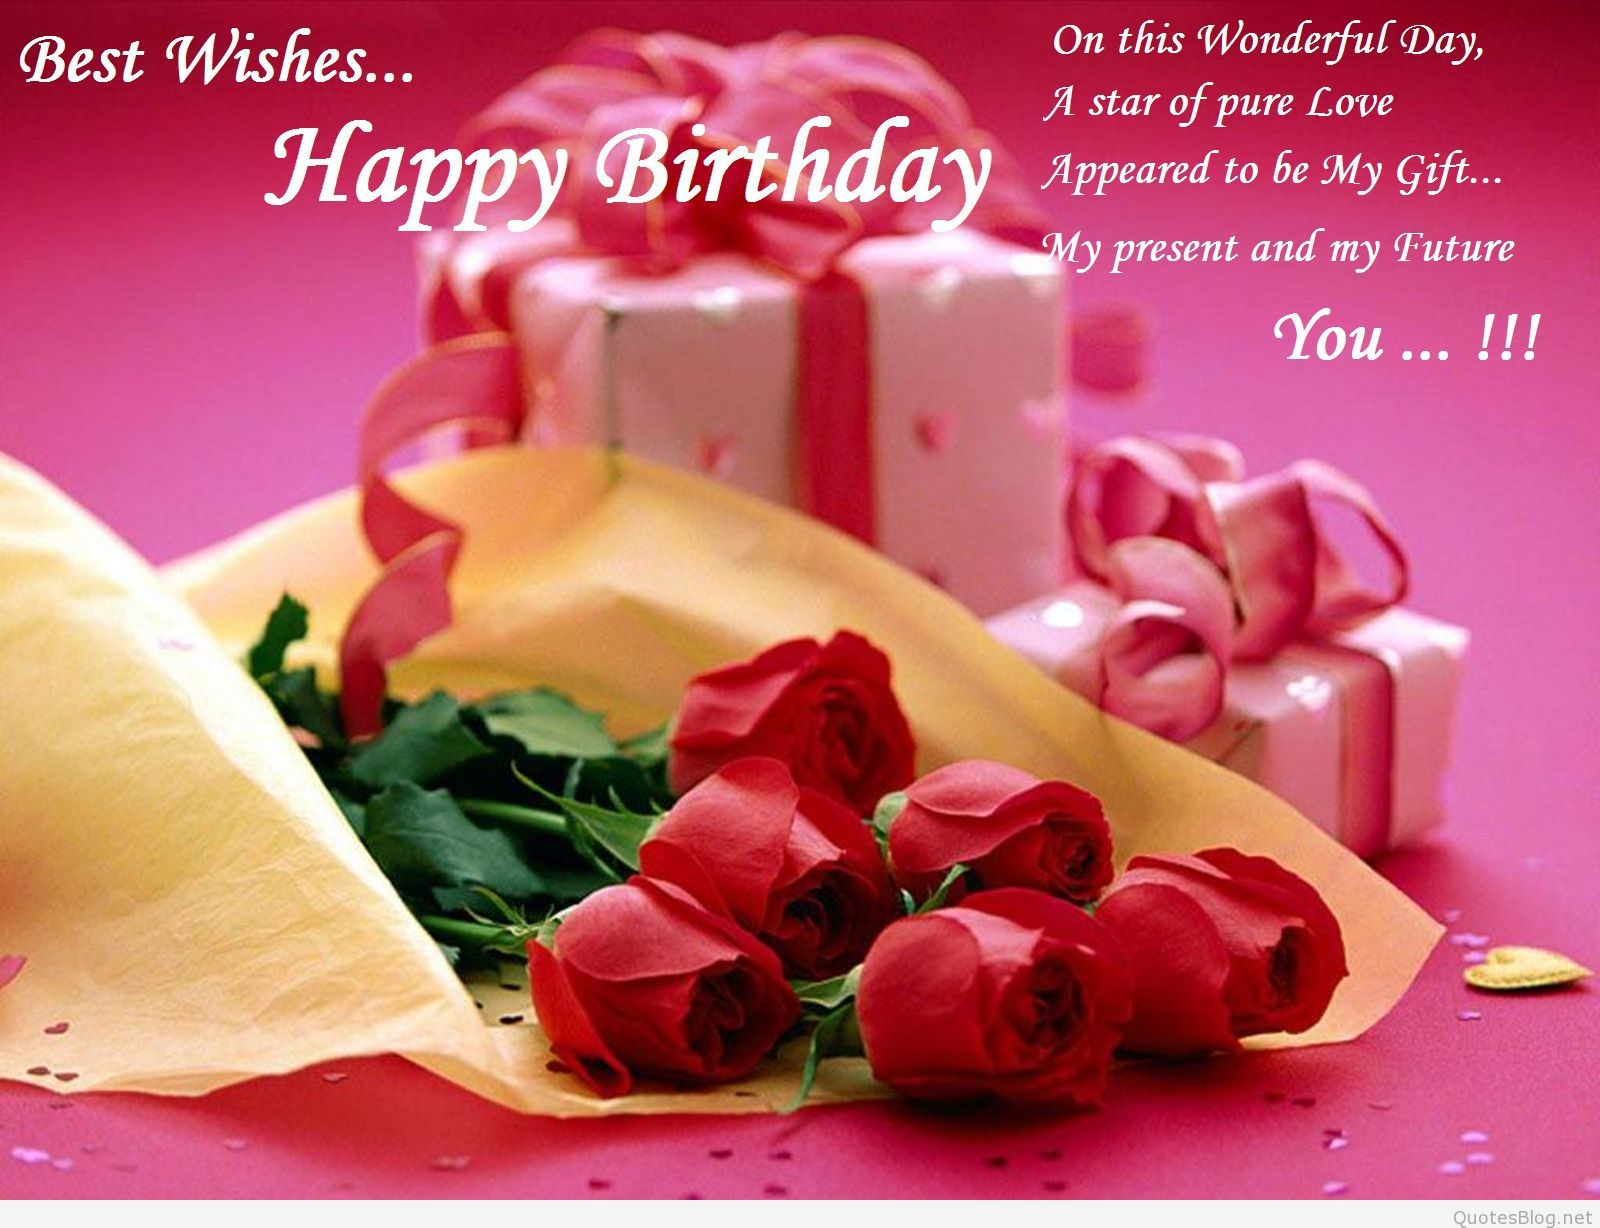 happy birthday gift photo download ; 3b9e0fb82bc24530dc3a5bc84b65ac75